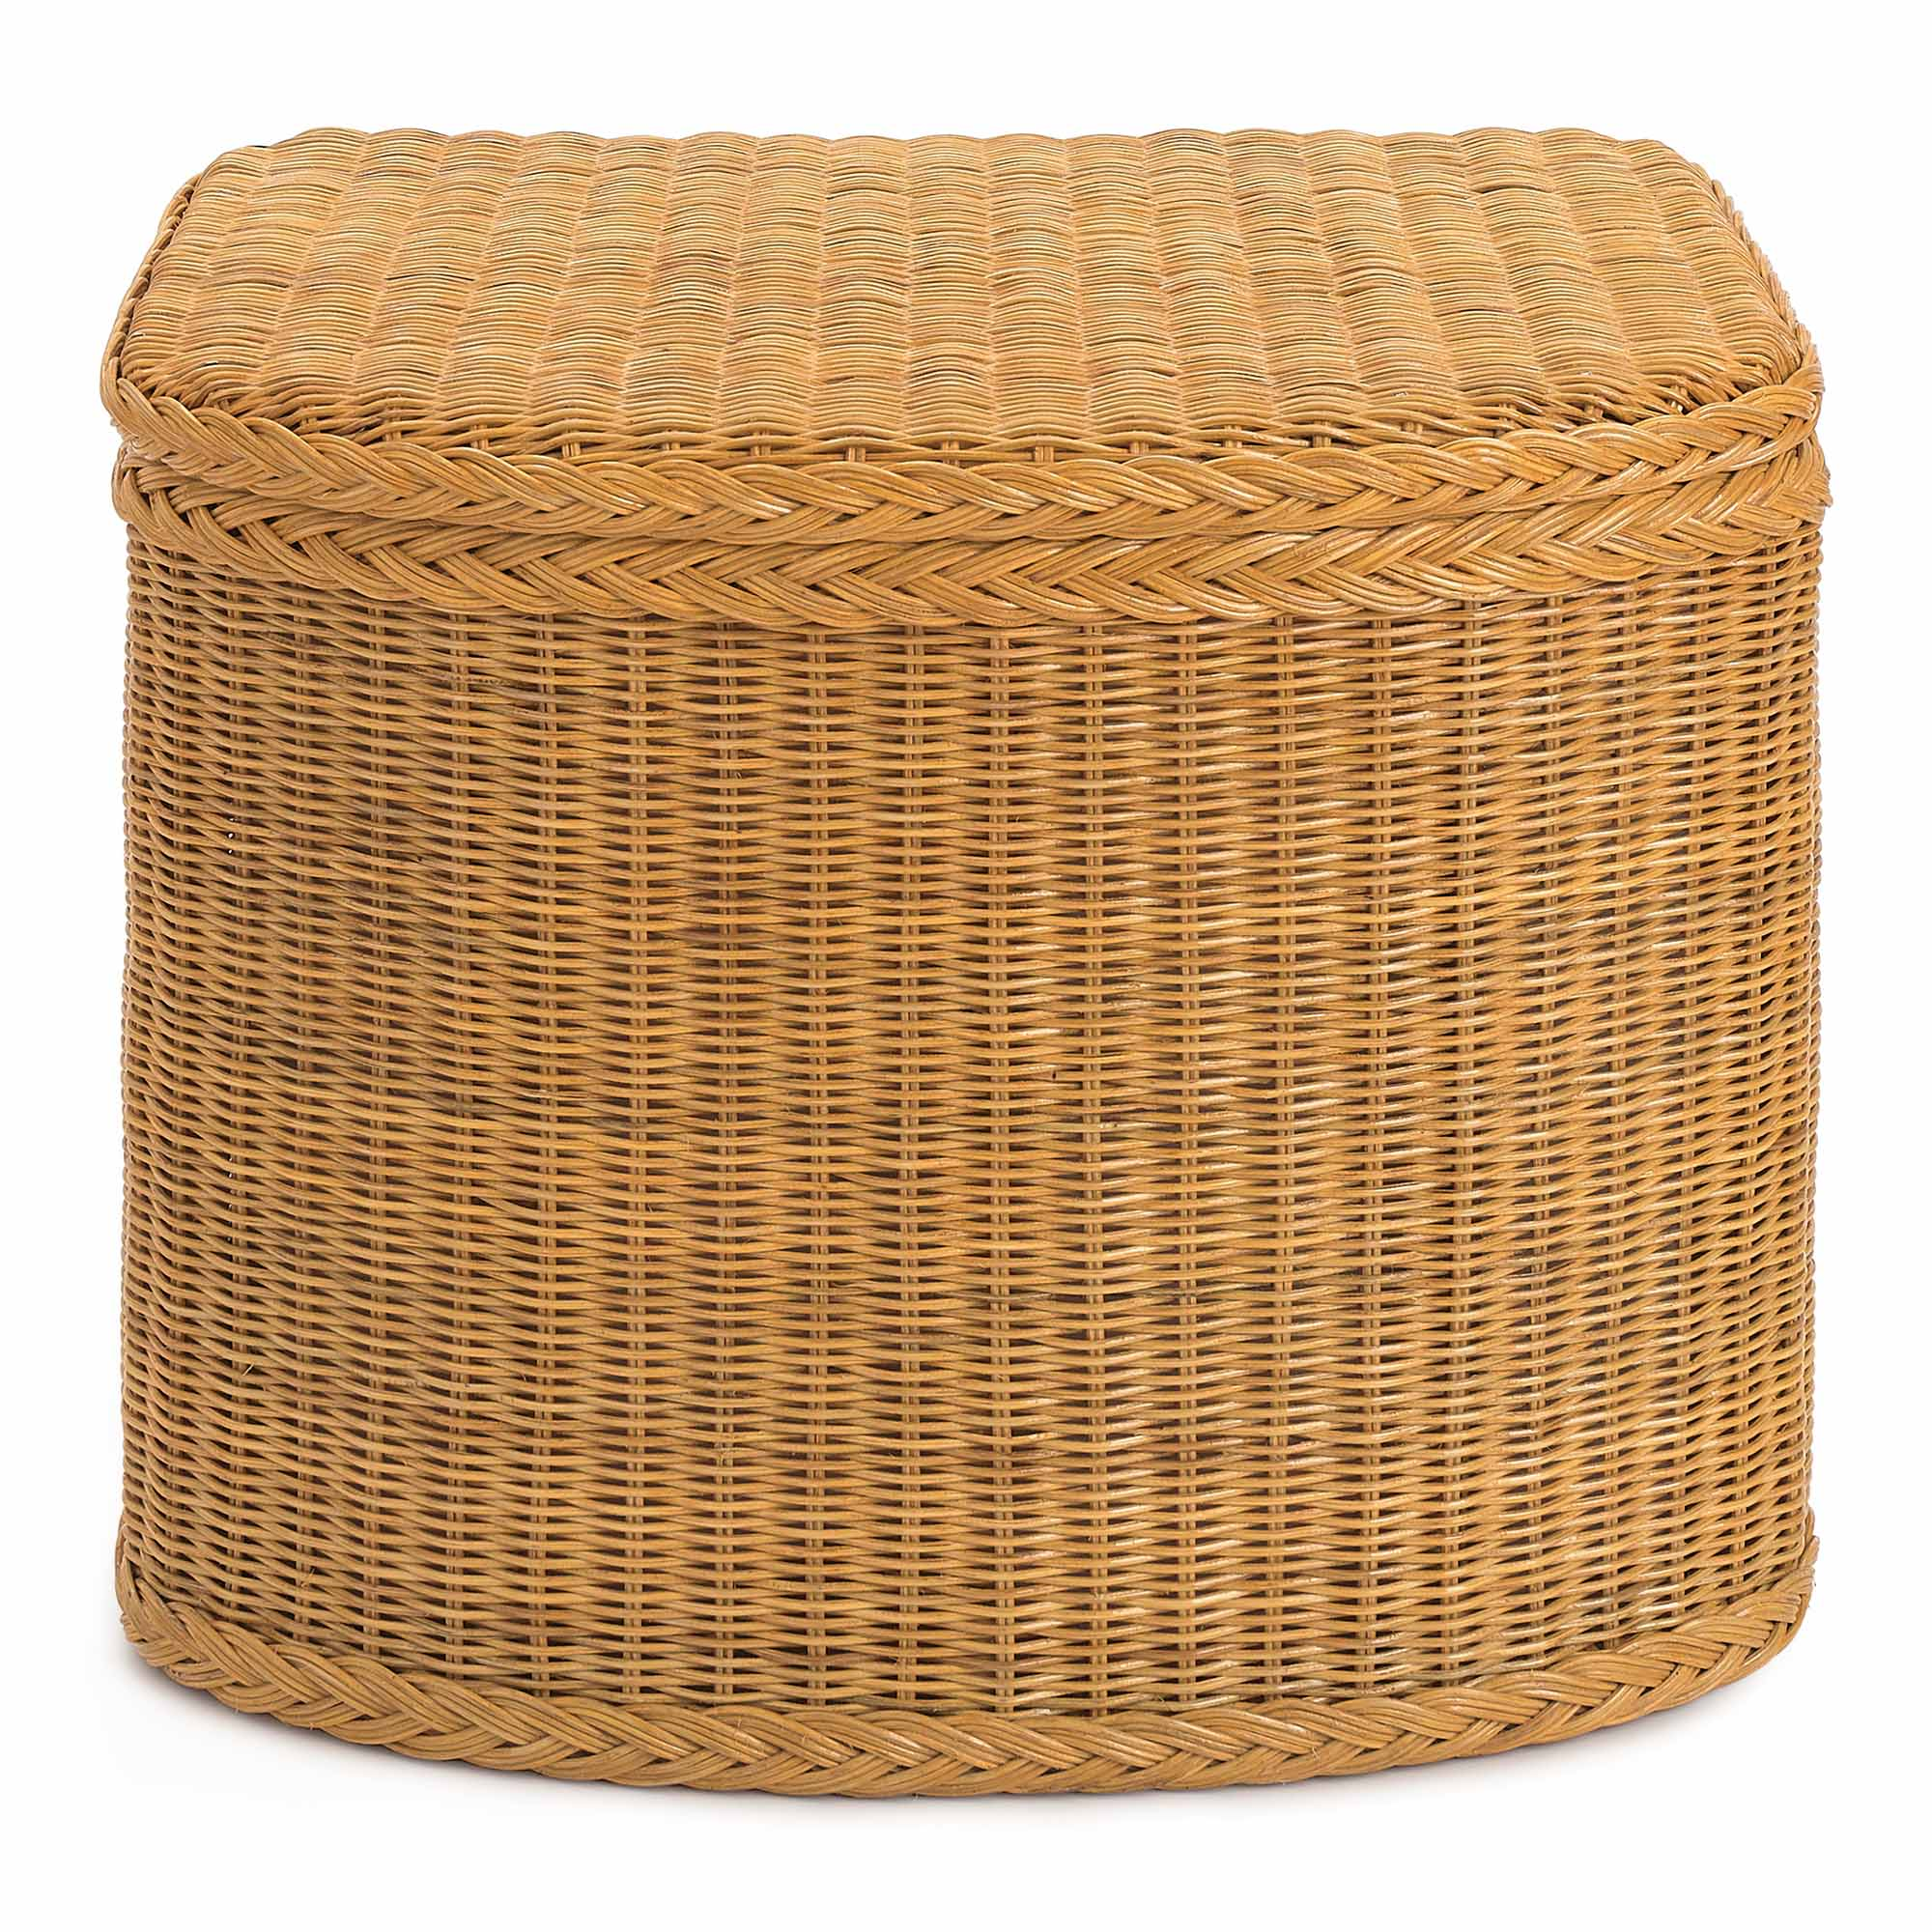 Java Laundry Basket honey, 100% rattan